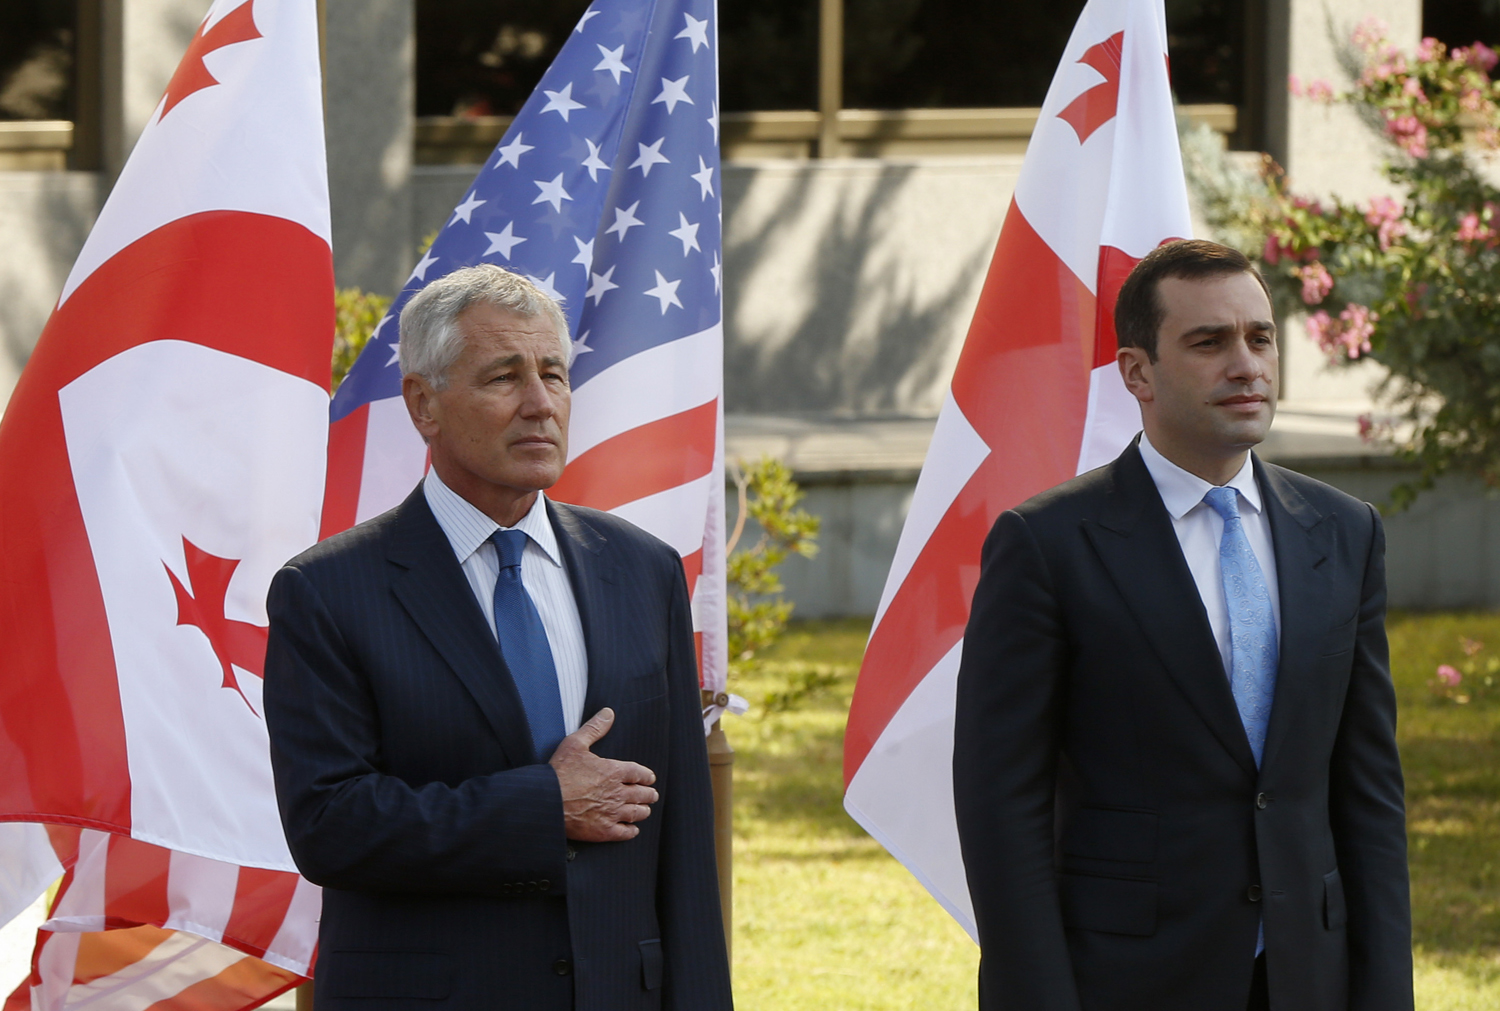 Georgia's Defence Minister Irakly Alasania (R) and U.S. Defense Secretary Chuck Hagel attend an official welcoming ceremony in Tbilisi on September 7, 2014.